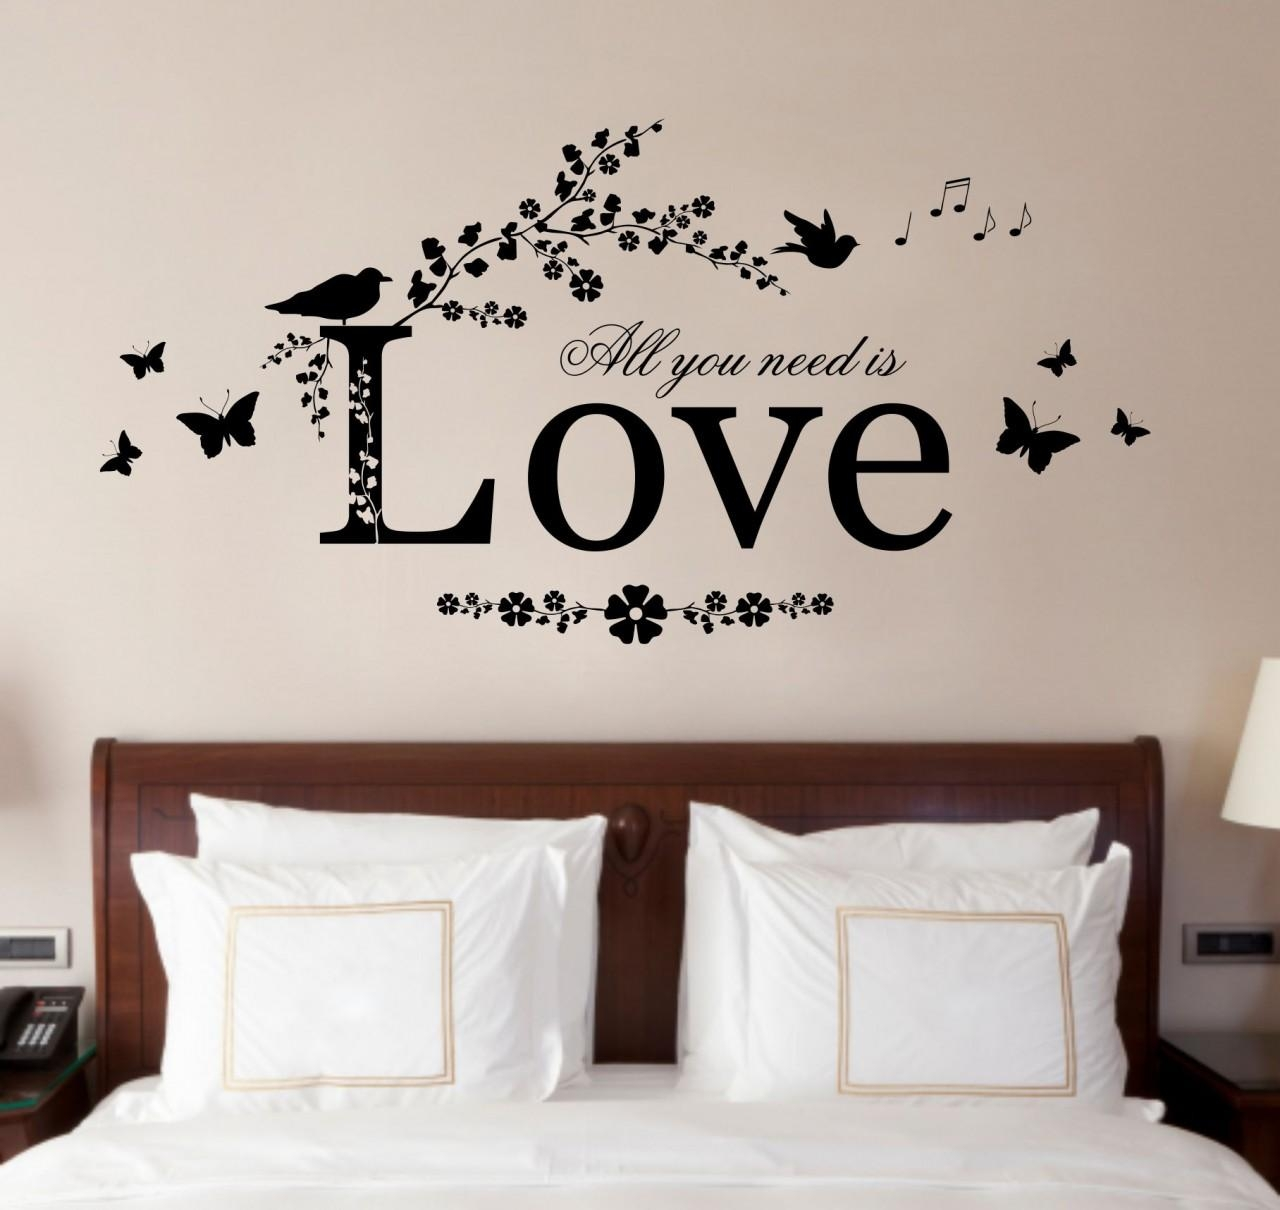 Wall Sticker Art. Family Tree Wall Decal Mural Sticker Art Inside Love Wall  Art (